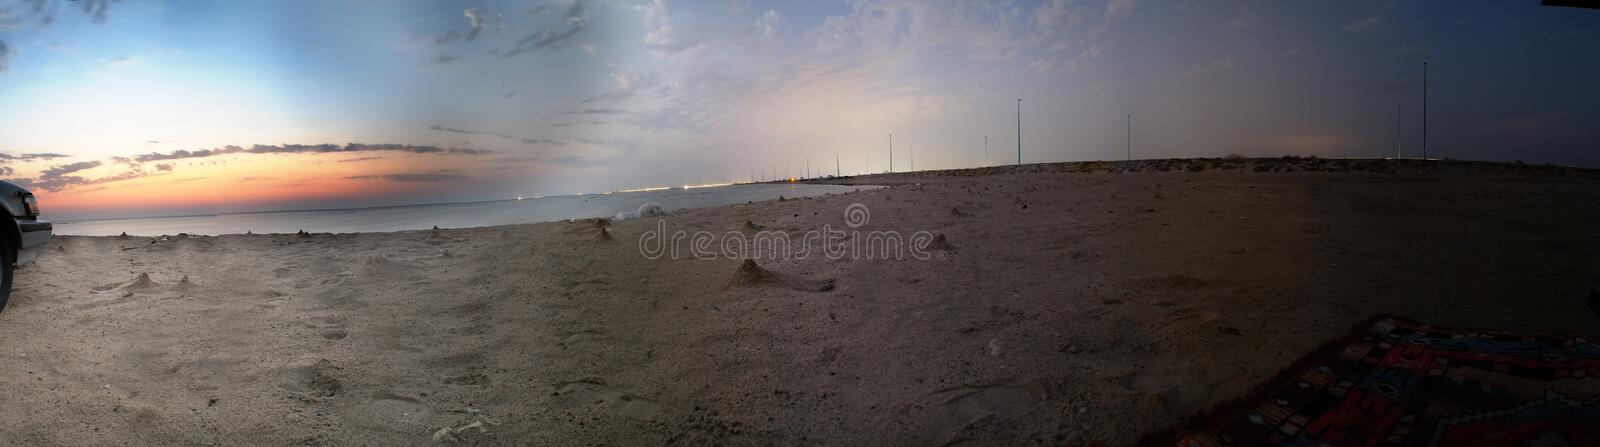 Sunset and twilight on the beach royalty free stock images